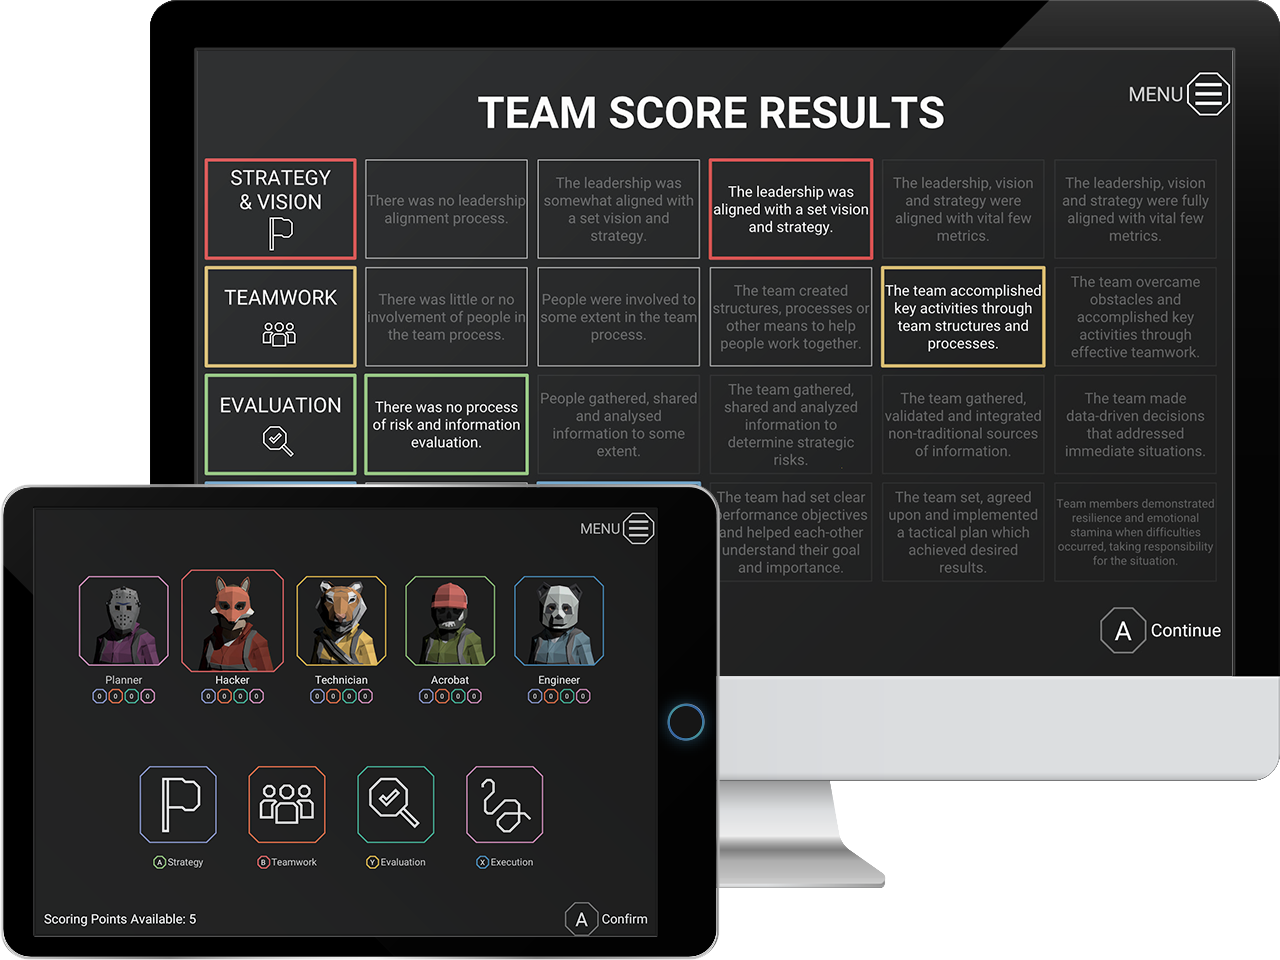 [Image: Team & Individual scoring on Desktop & Tablet]